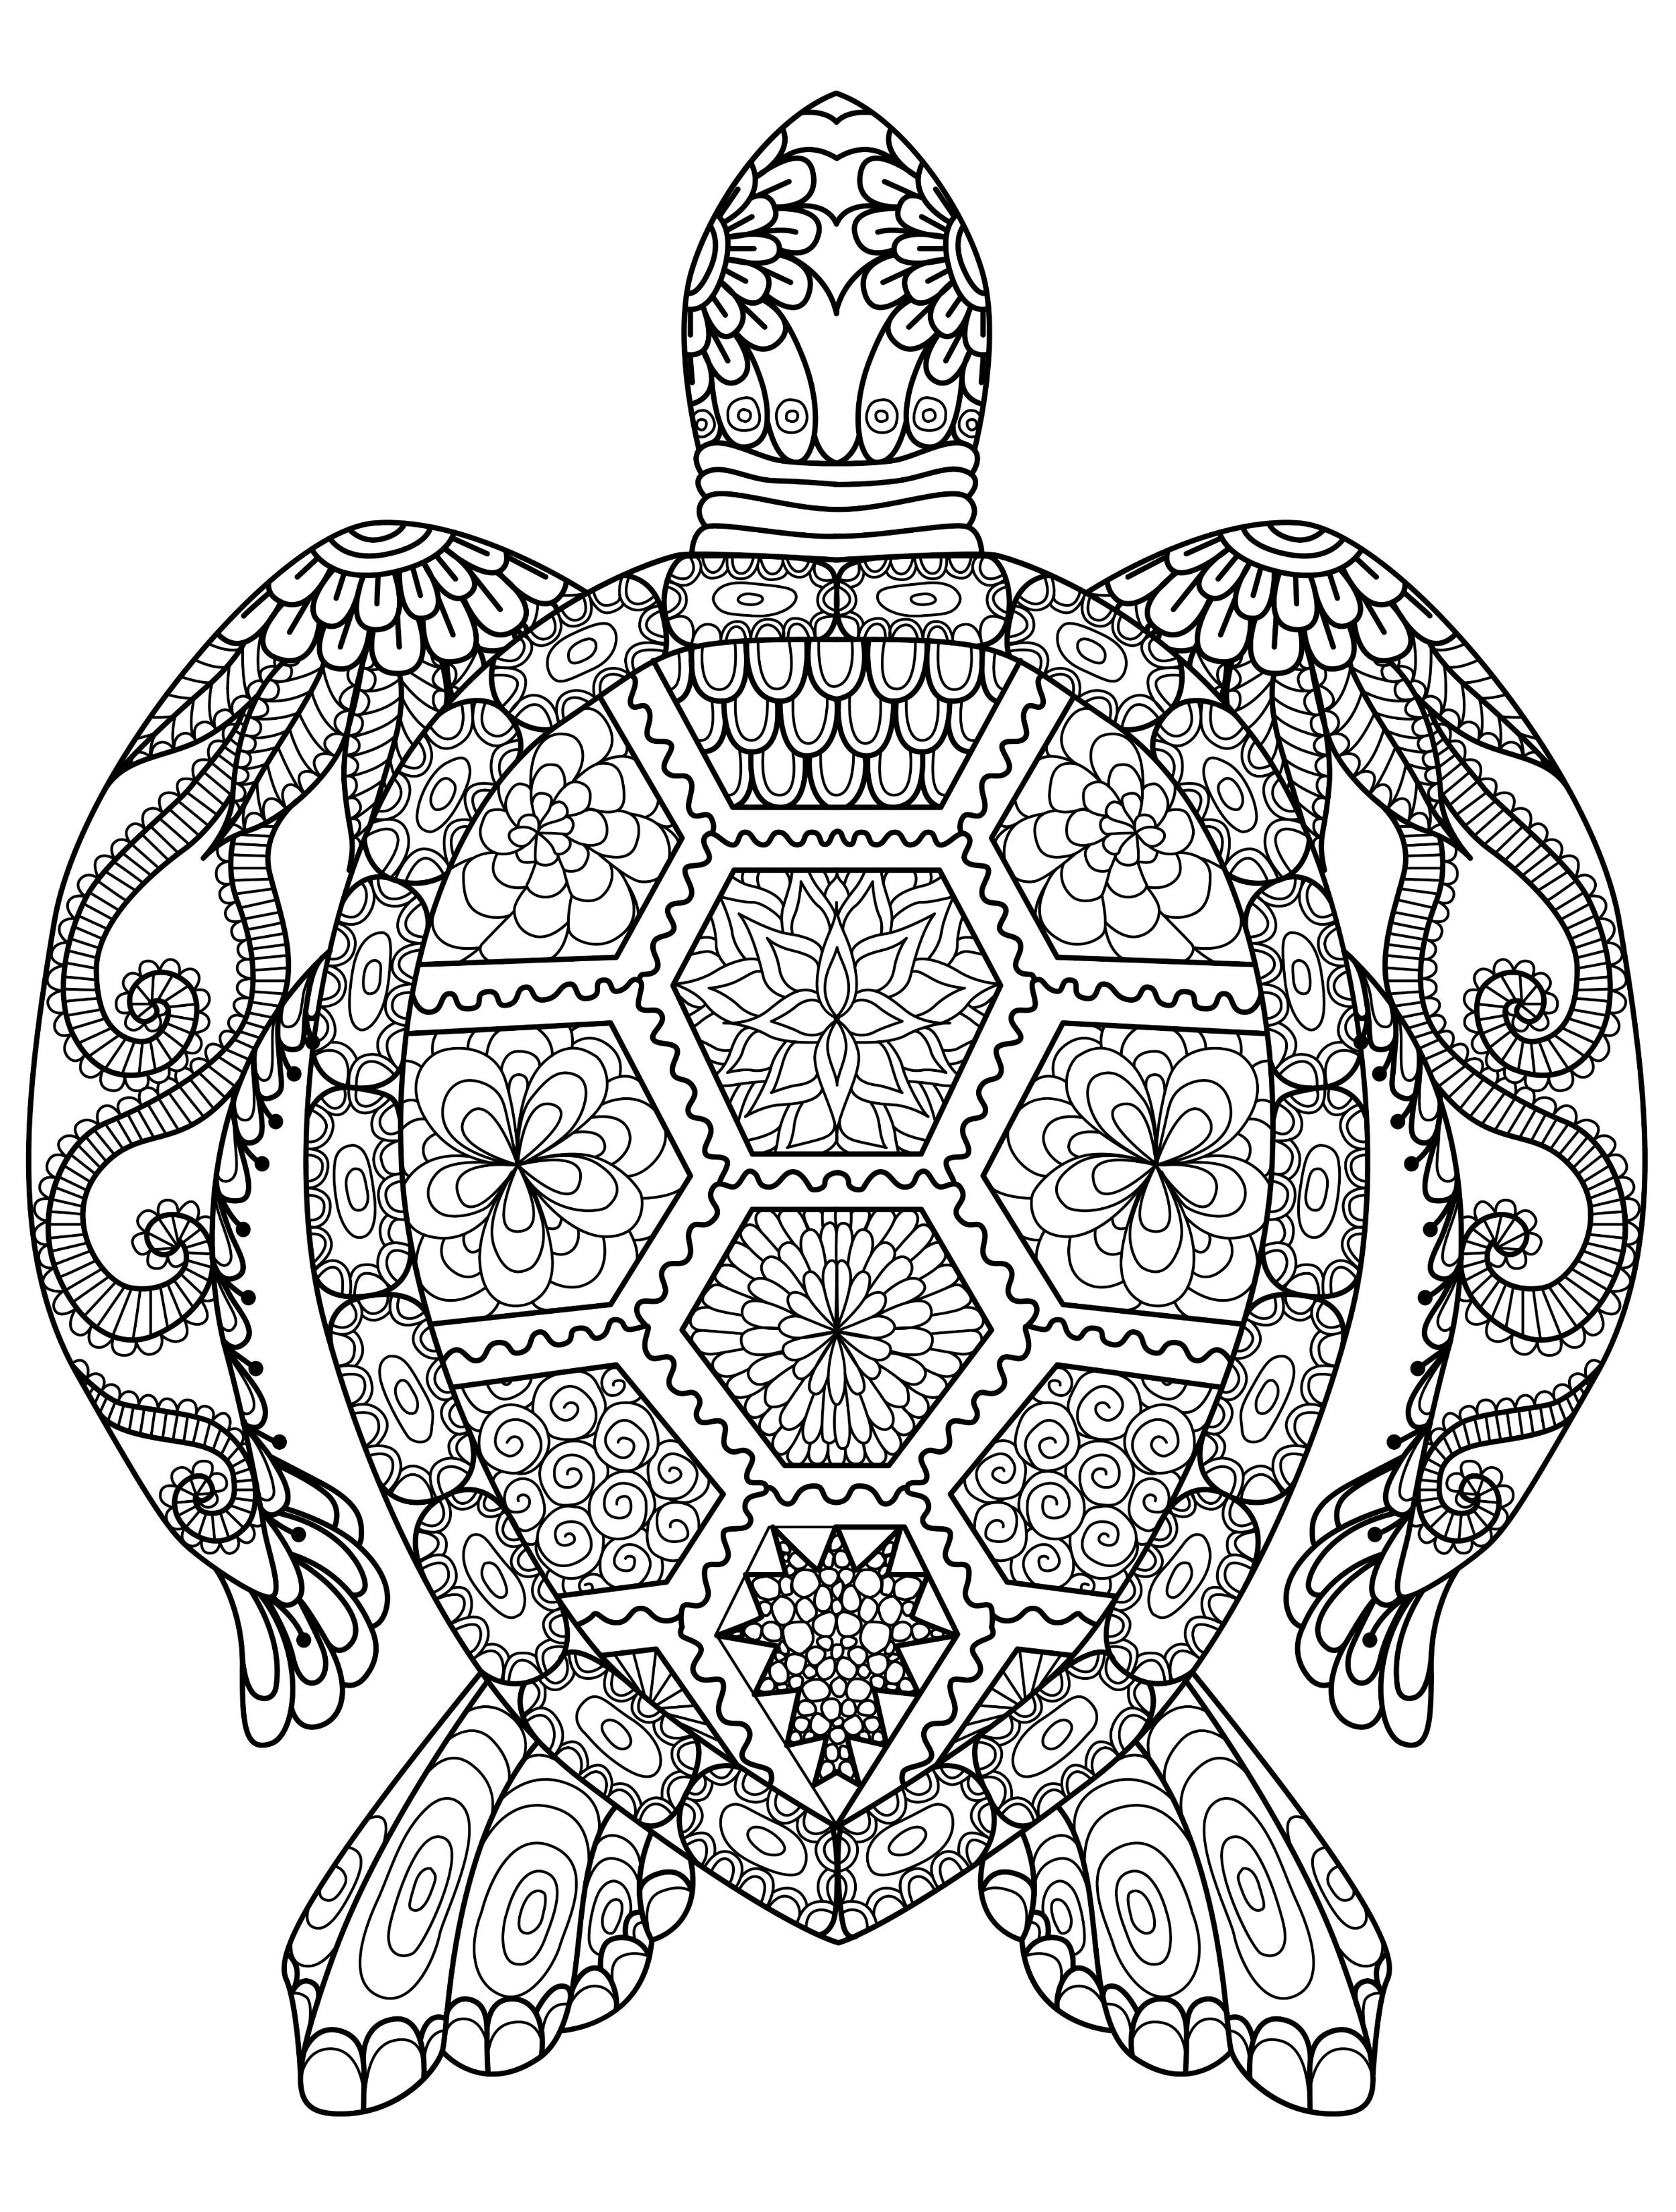 20 Gorgeous Free Printable Adult Coloring Pages | Coloring--Back To - Free Printable Coloring Cards For Adults